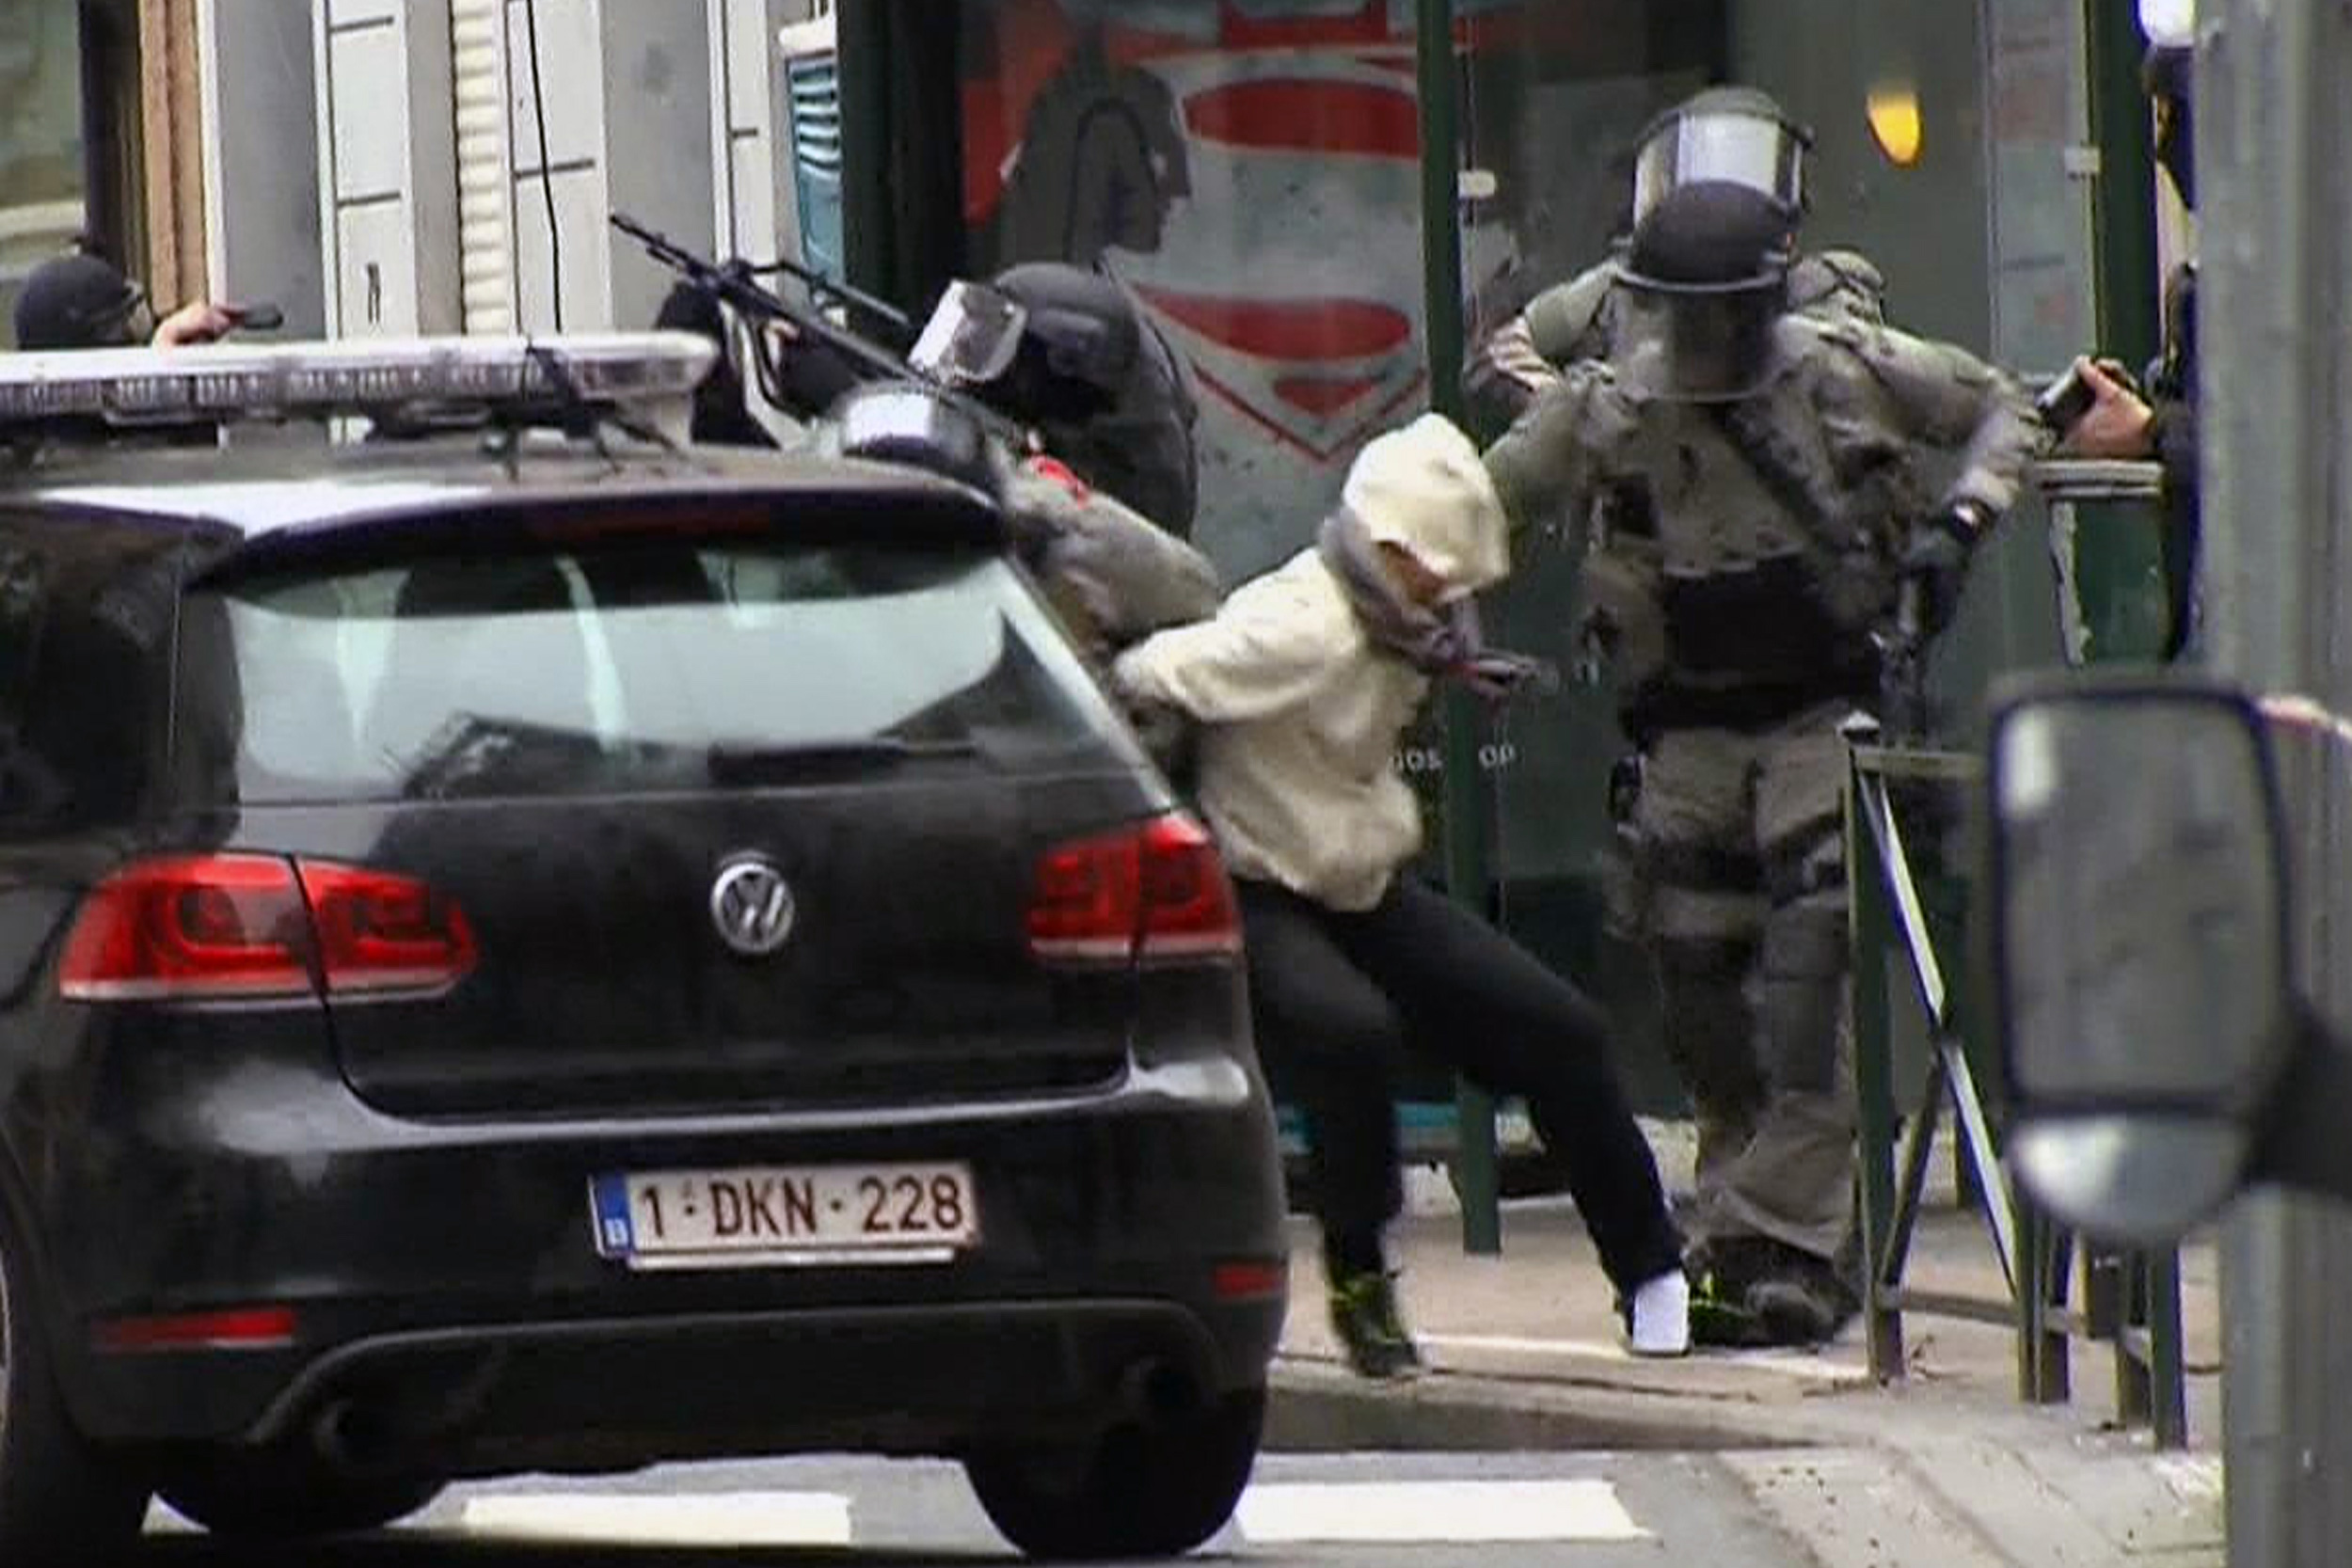 In this framegrab taken from VTM, something appears to drop from inside the pant leg of Salah Abdeslam as he is arrested by police during a raid in the Molenbeek neighborhood of Brussels, Belgium, March 18, 2016.